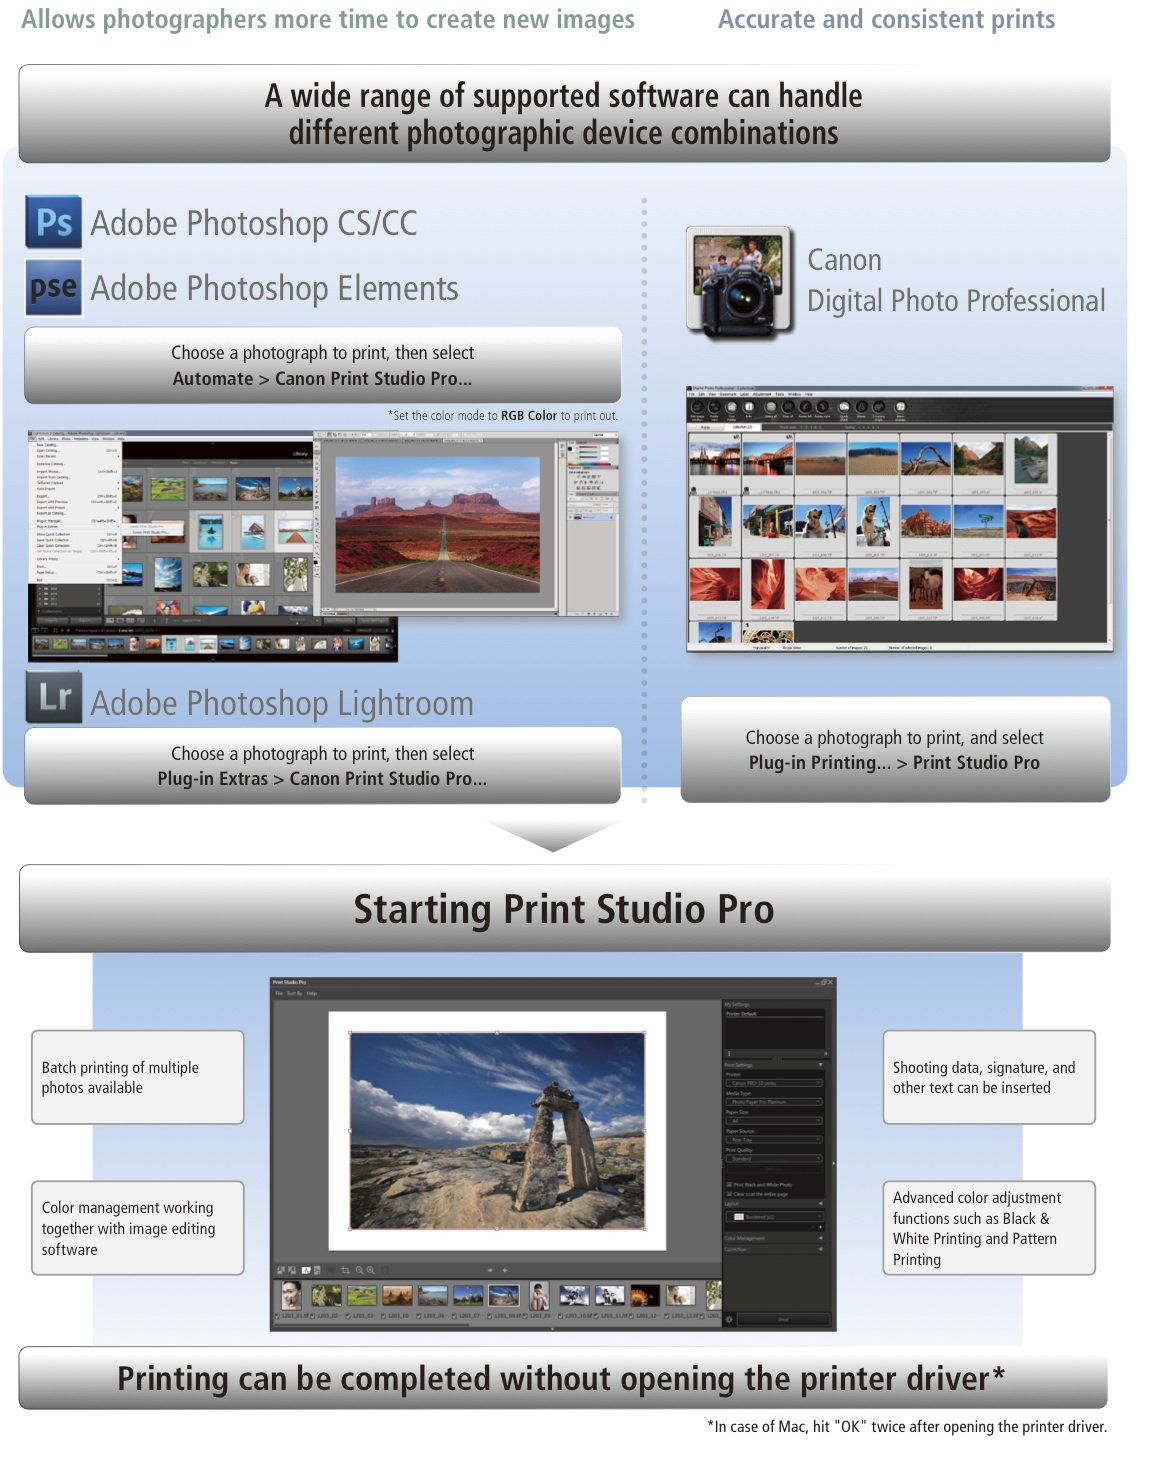 Seamless operation with image editing software makes printing much simpler